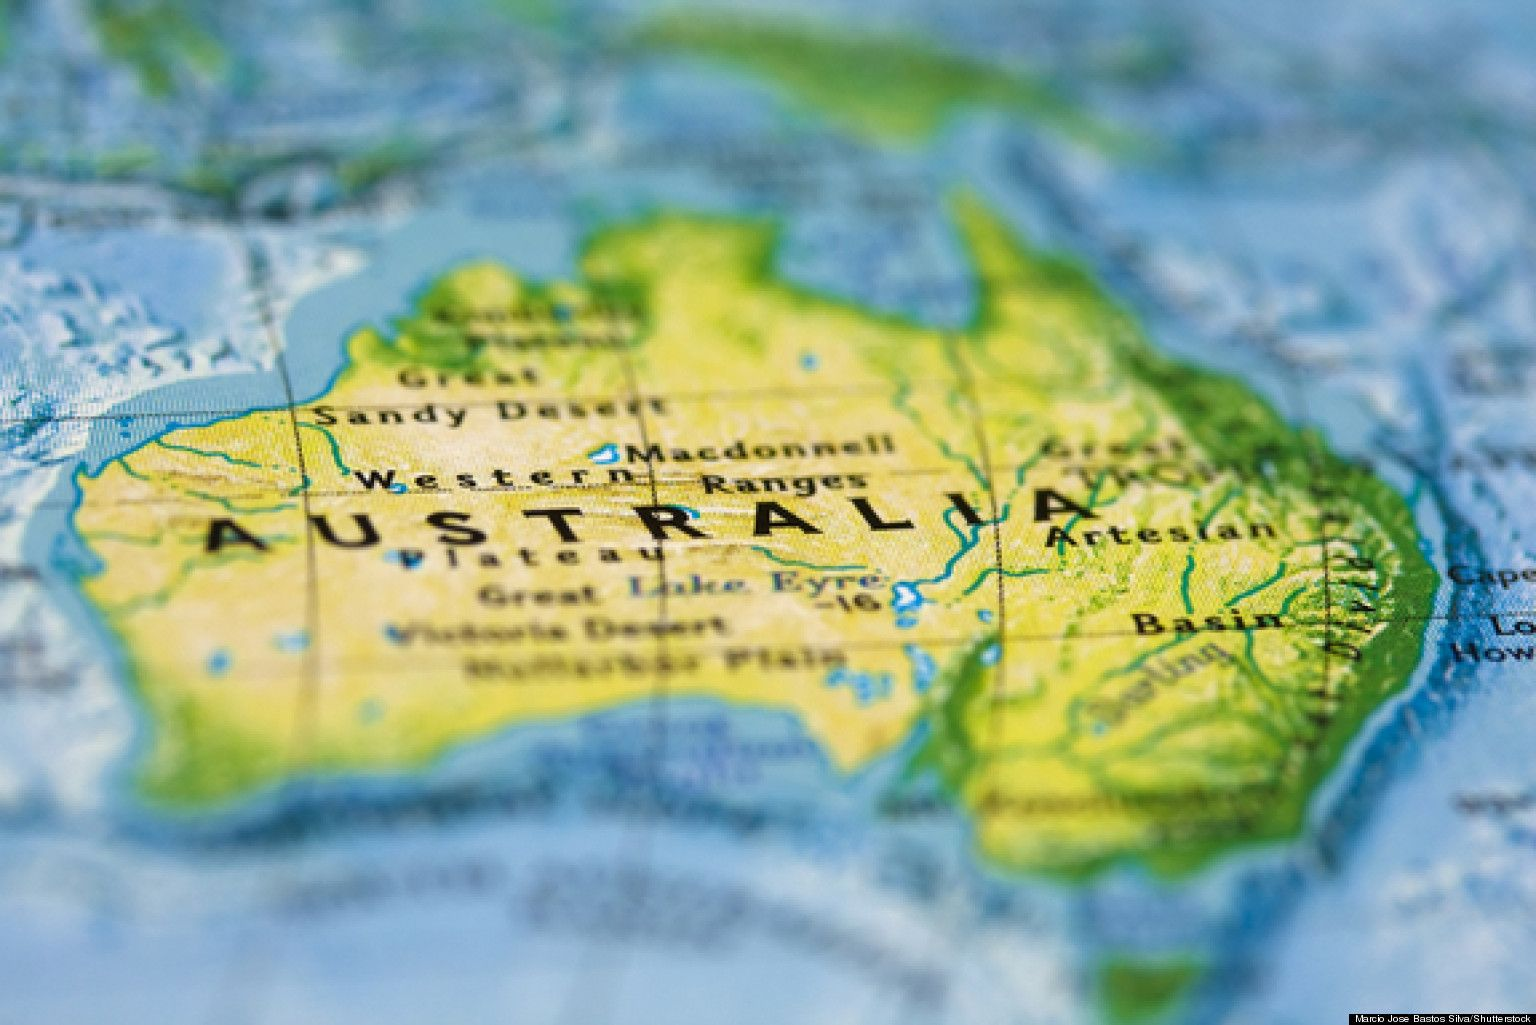 <p>A new language, one that combines elements of English with traditional indigenous speech, has been discovered in northern Australia, according to a new study.</p><p>The language, now known as Light Warlpiri, is spoken by approximately 600 people in a remote desert community about 400 miles (644 kilometers) from Katherine, a town located in Australia's Northern Territory, said Carmel O'Shannessy, a professor in the department of linguistics at the University of Michigan in Ann Arbor. ...